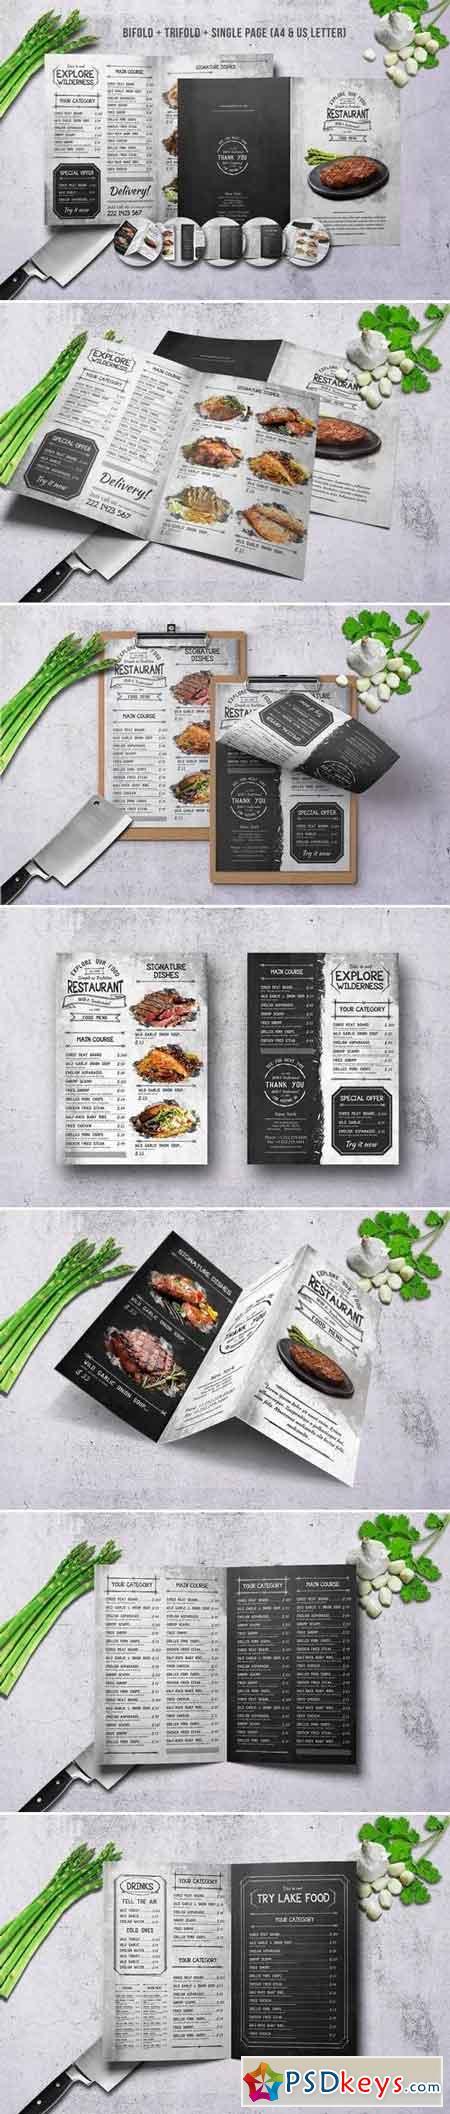 Vintage Food Menu Bundle A4 & US Letter